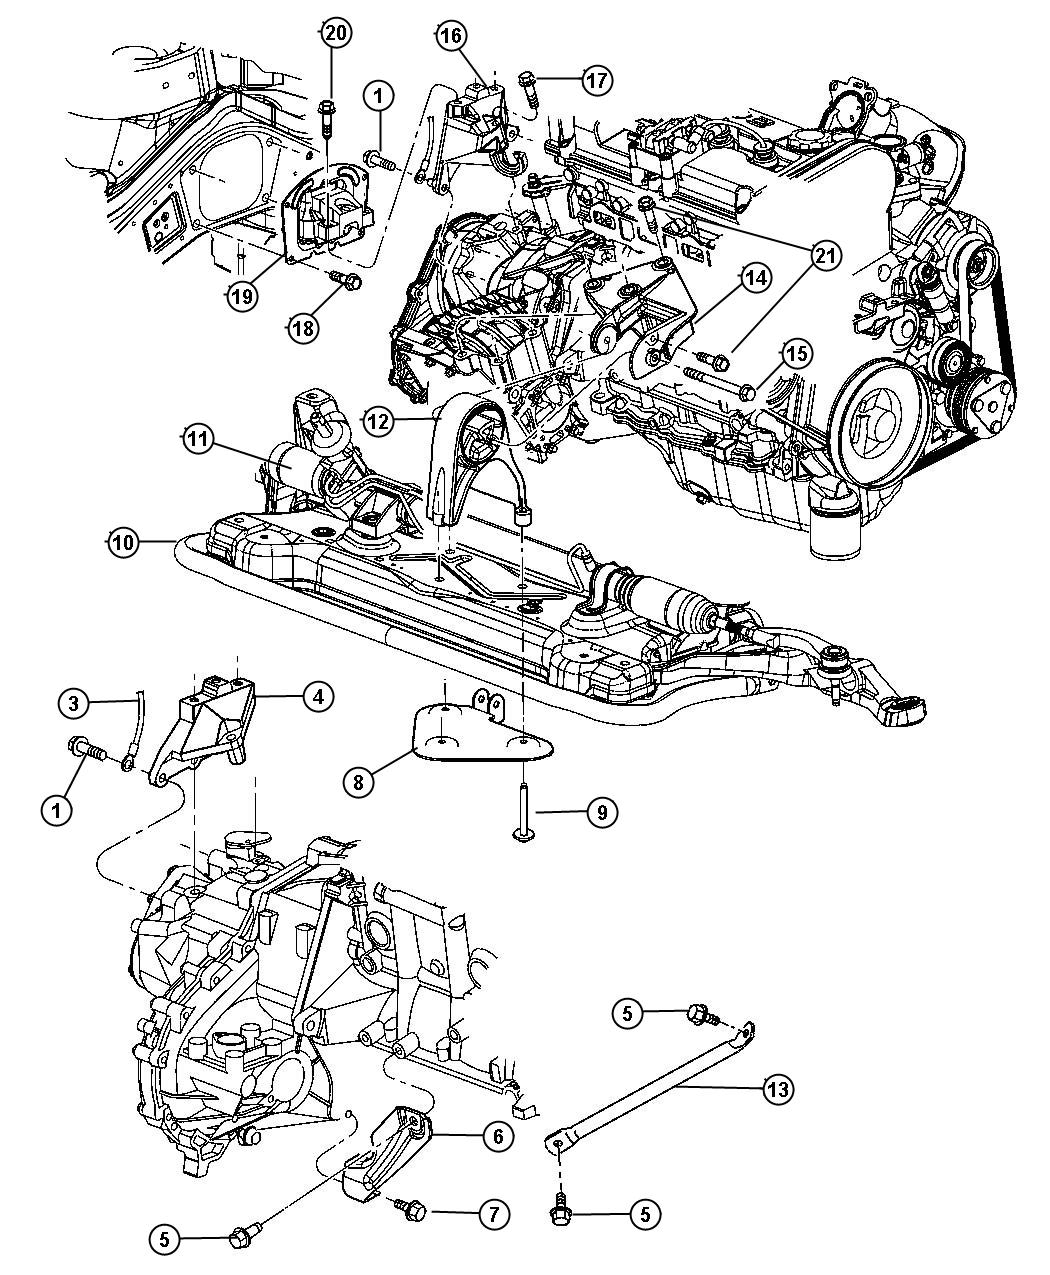 hight resolution of 98 chrysler sebring wiringdiagram